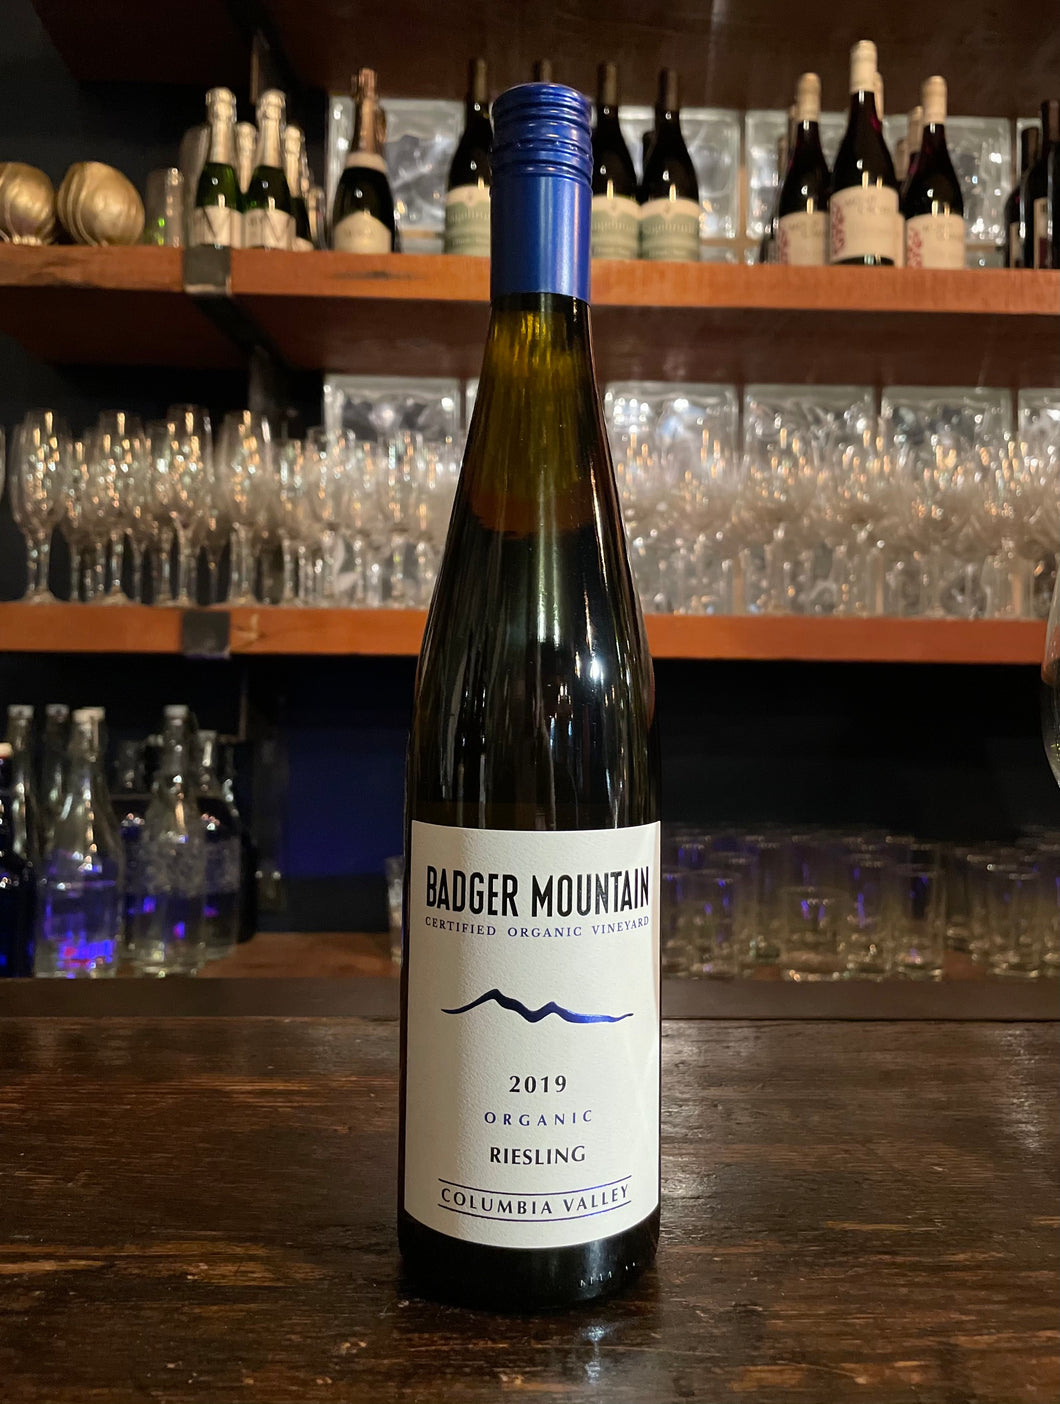 Badger Mountain Riesling, Columbia Valley 2019